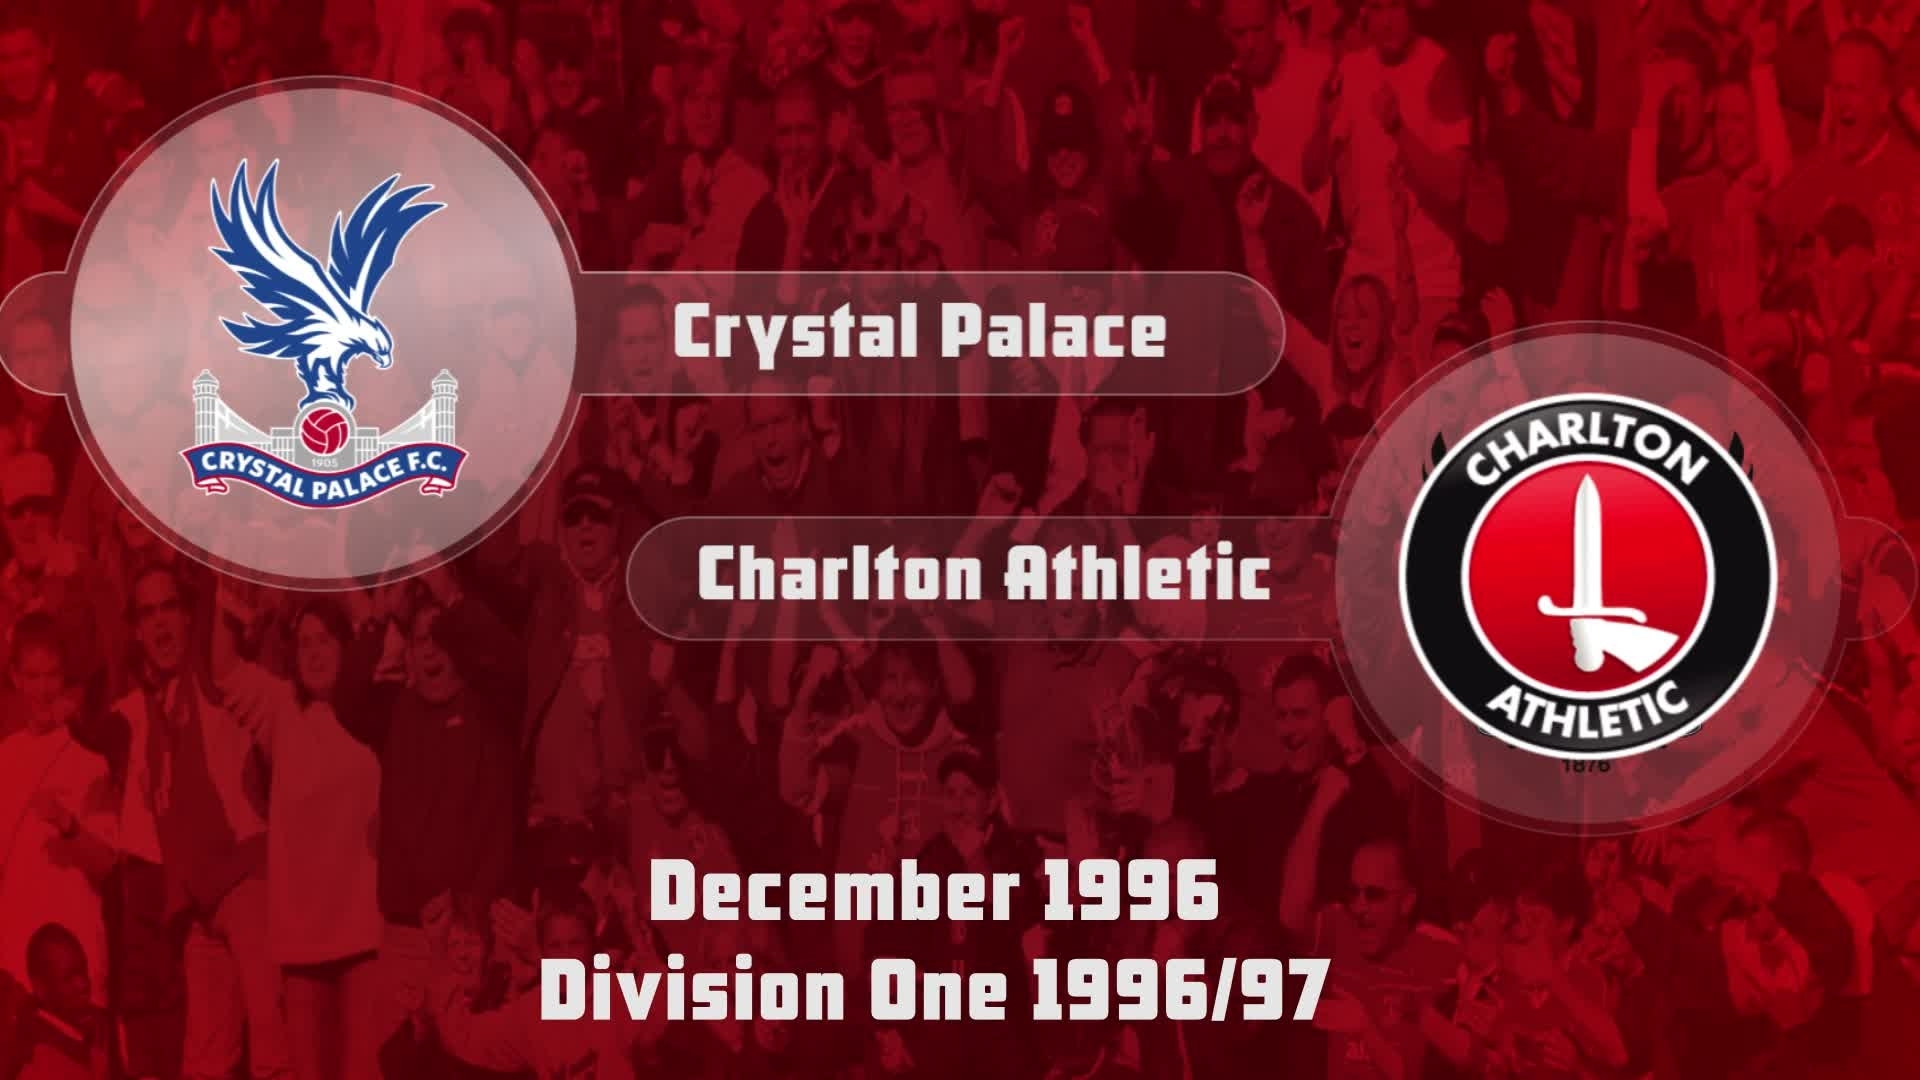 27 HIGHLIGHTS | Crystal Palace 1 Charlton 0 (Dec 1996)